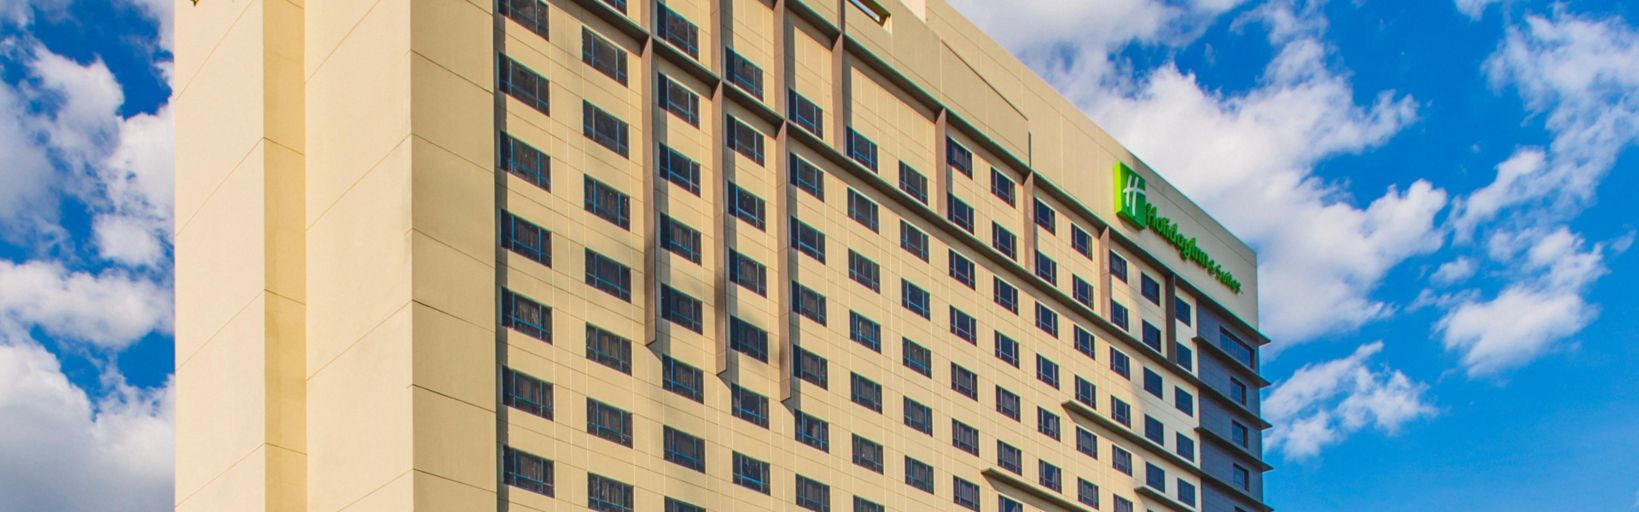 Holiday inn suites makati hotel rooms near manila airport holiday inn amp suites makati is directly connected to glorietta solutioingenieria Image collections